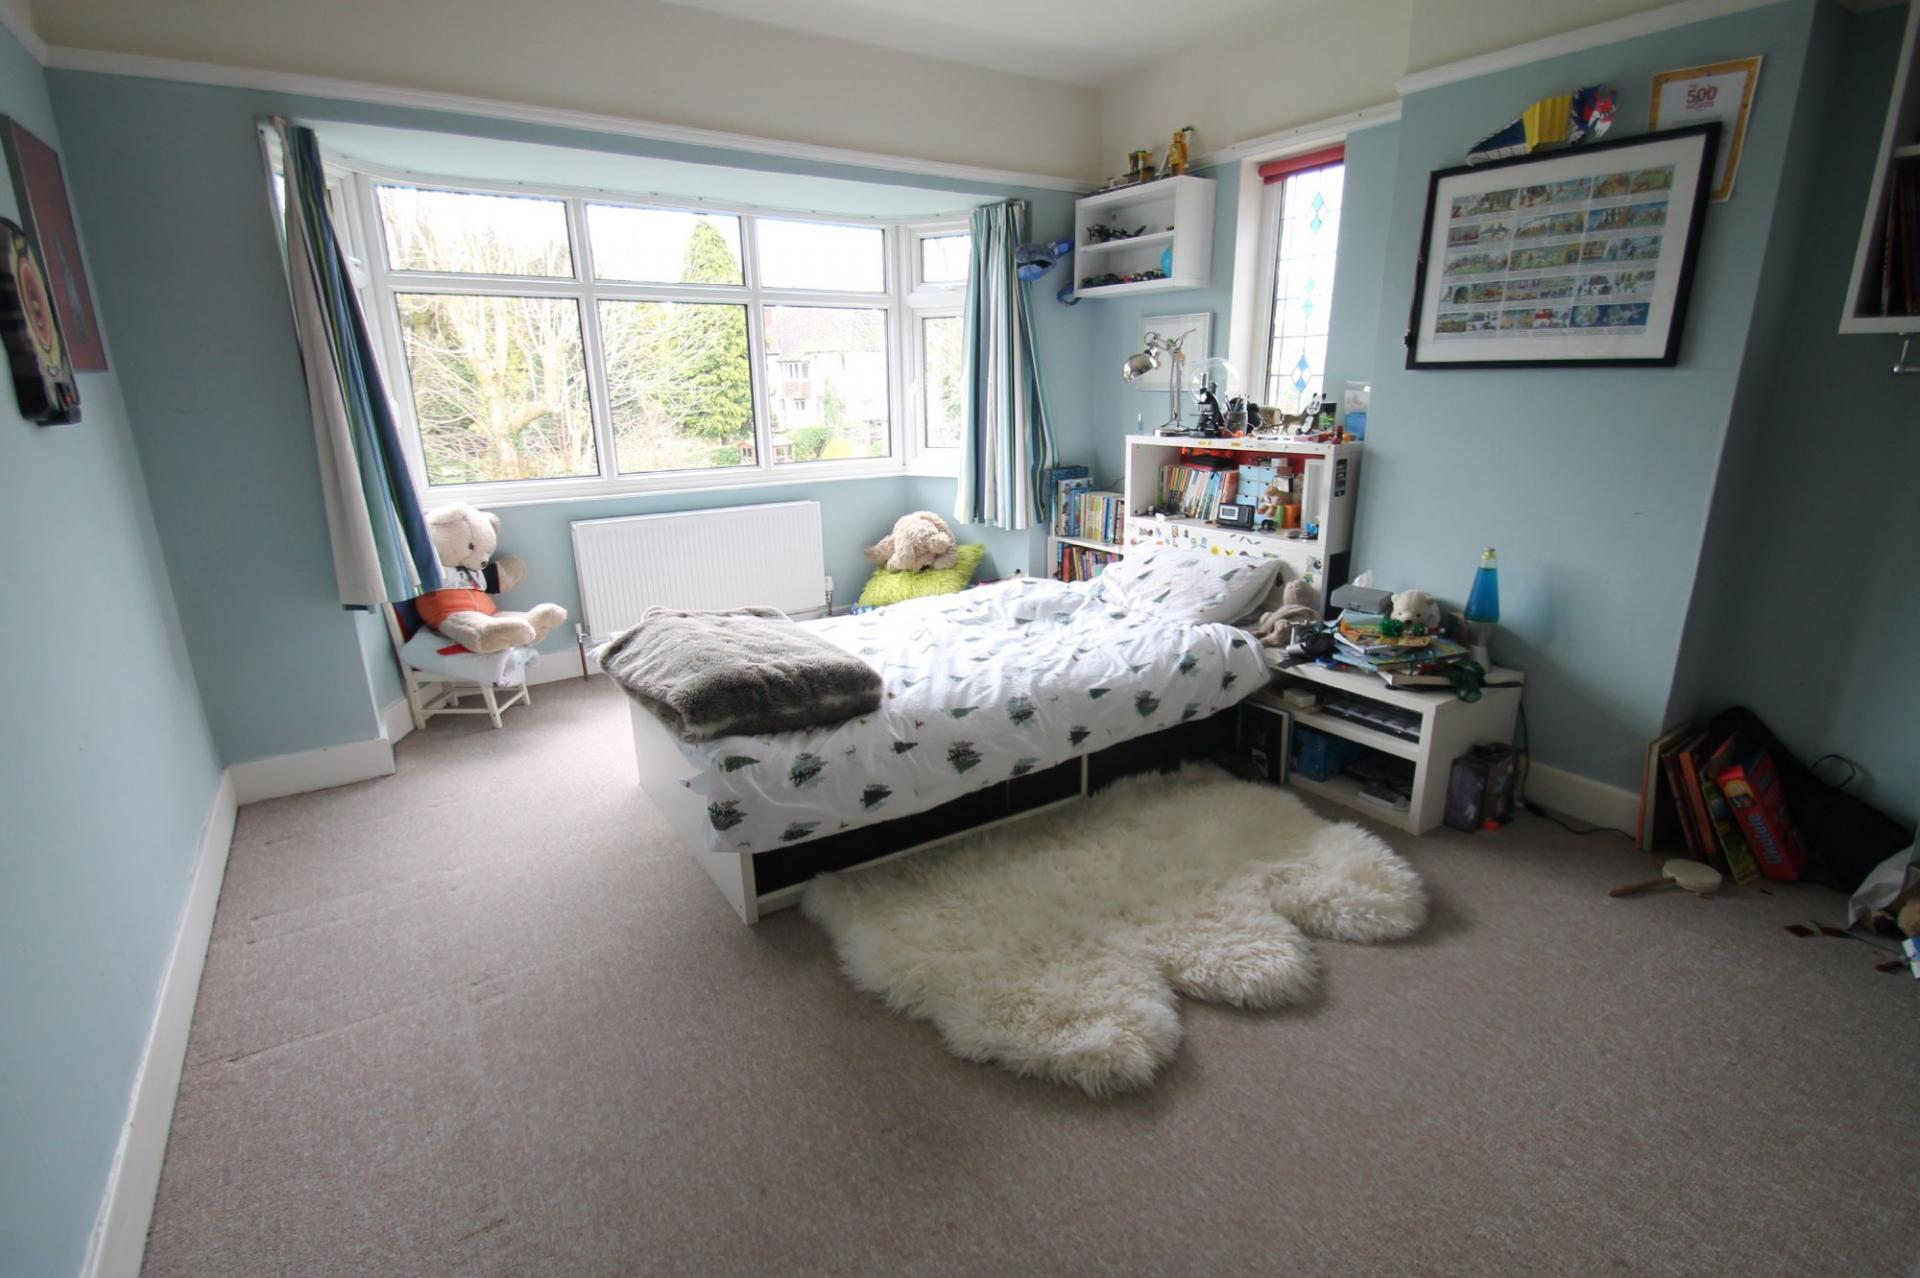 Bedroom detached house for sale in solihull